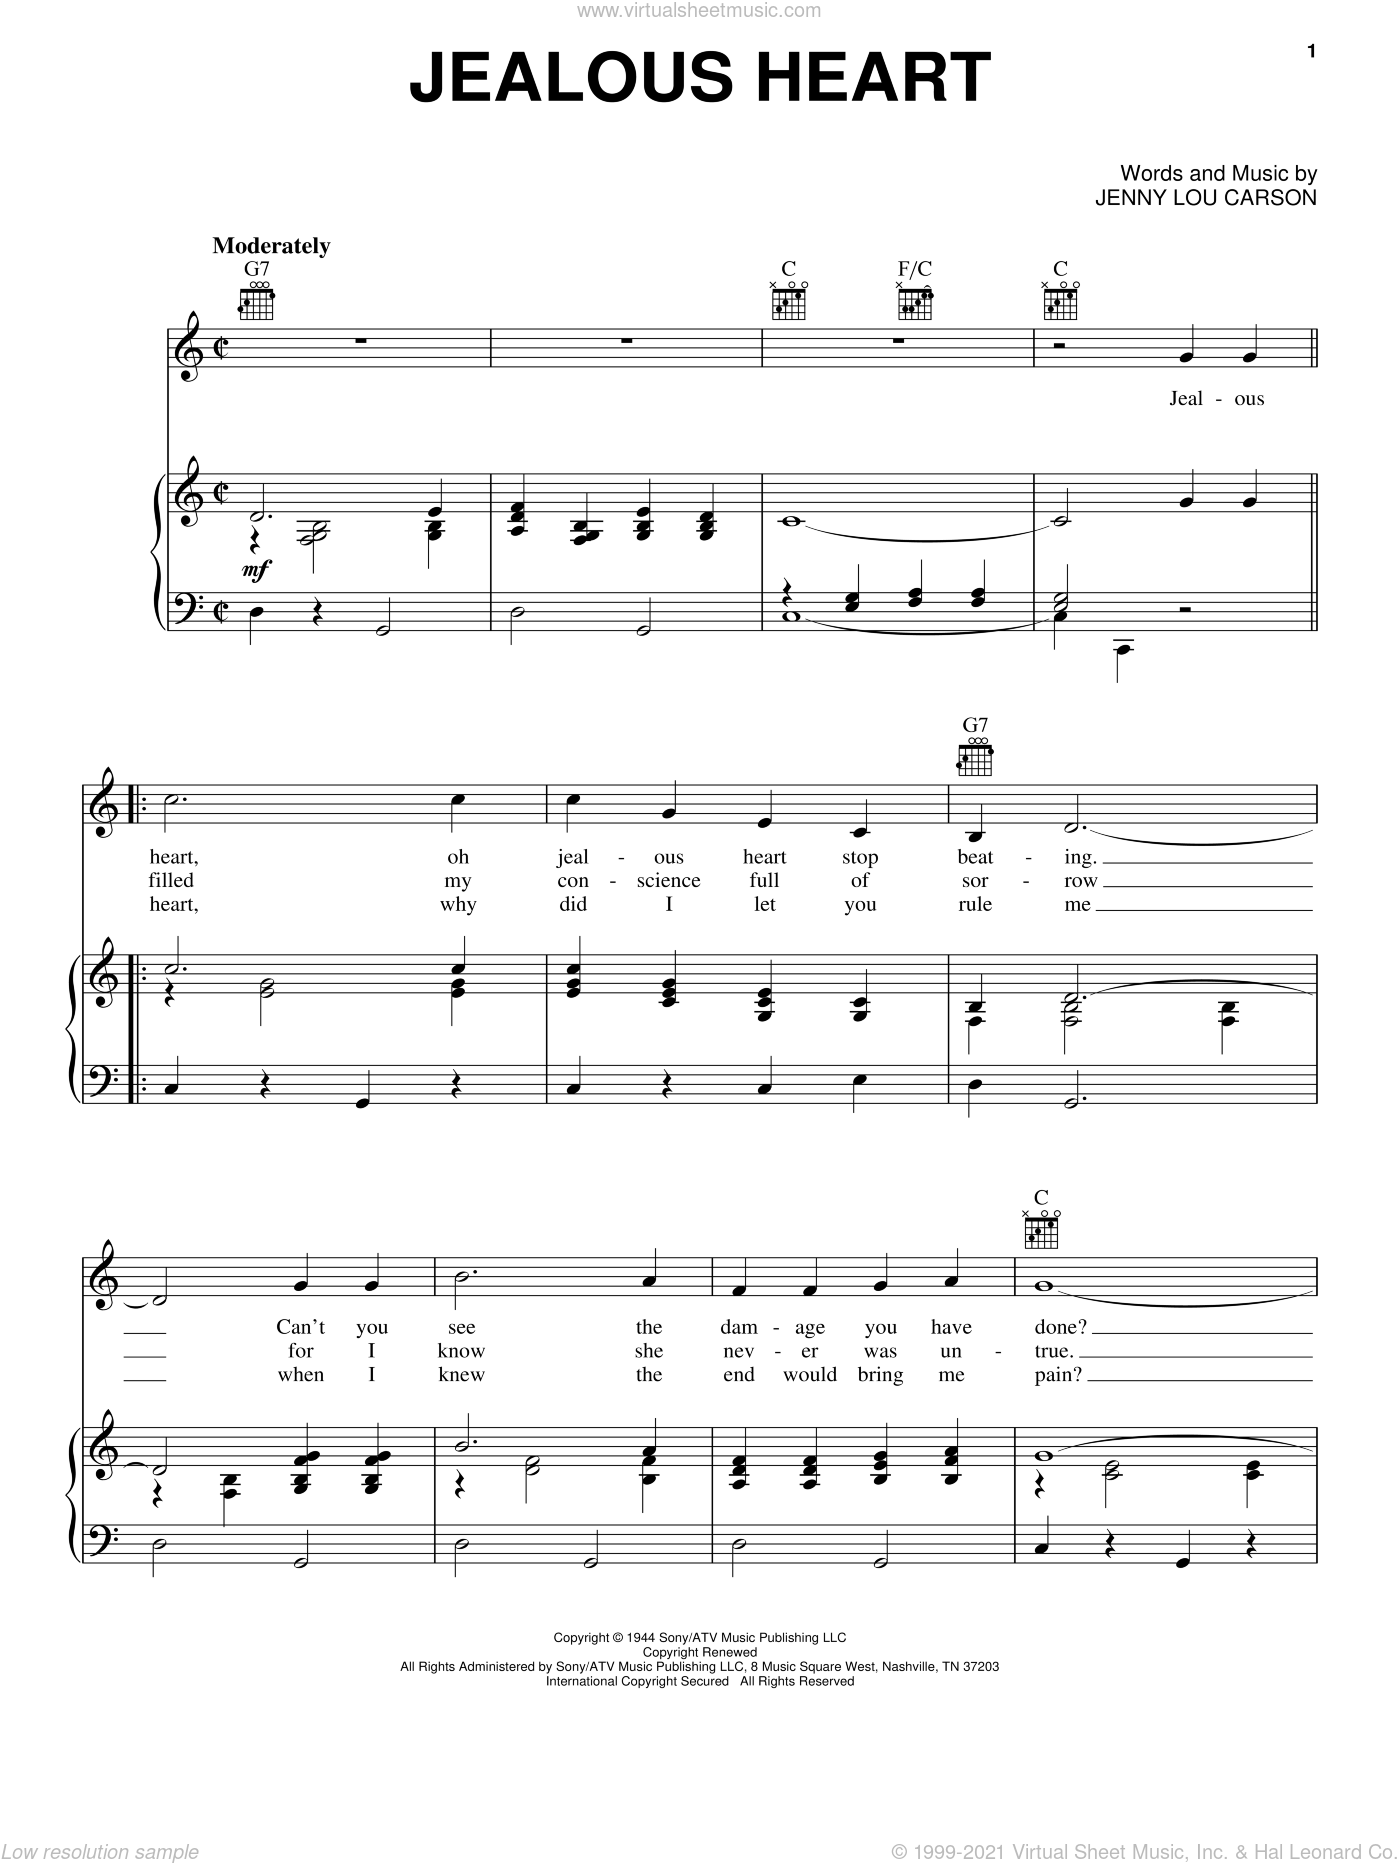 Jealous Heart sheet music for voice, piano or guitar by Jenny Lou Carson and Tex Ritter. Score Image Preview.